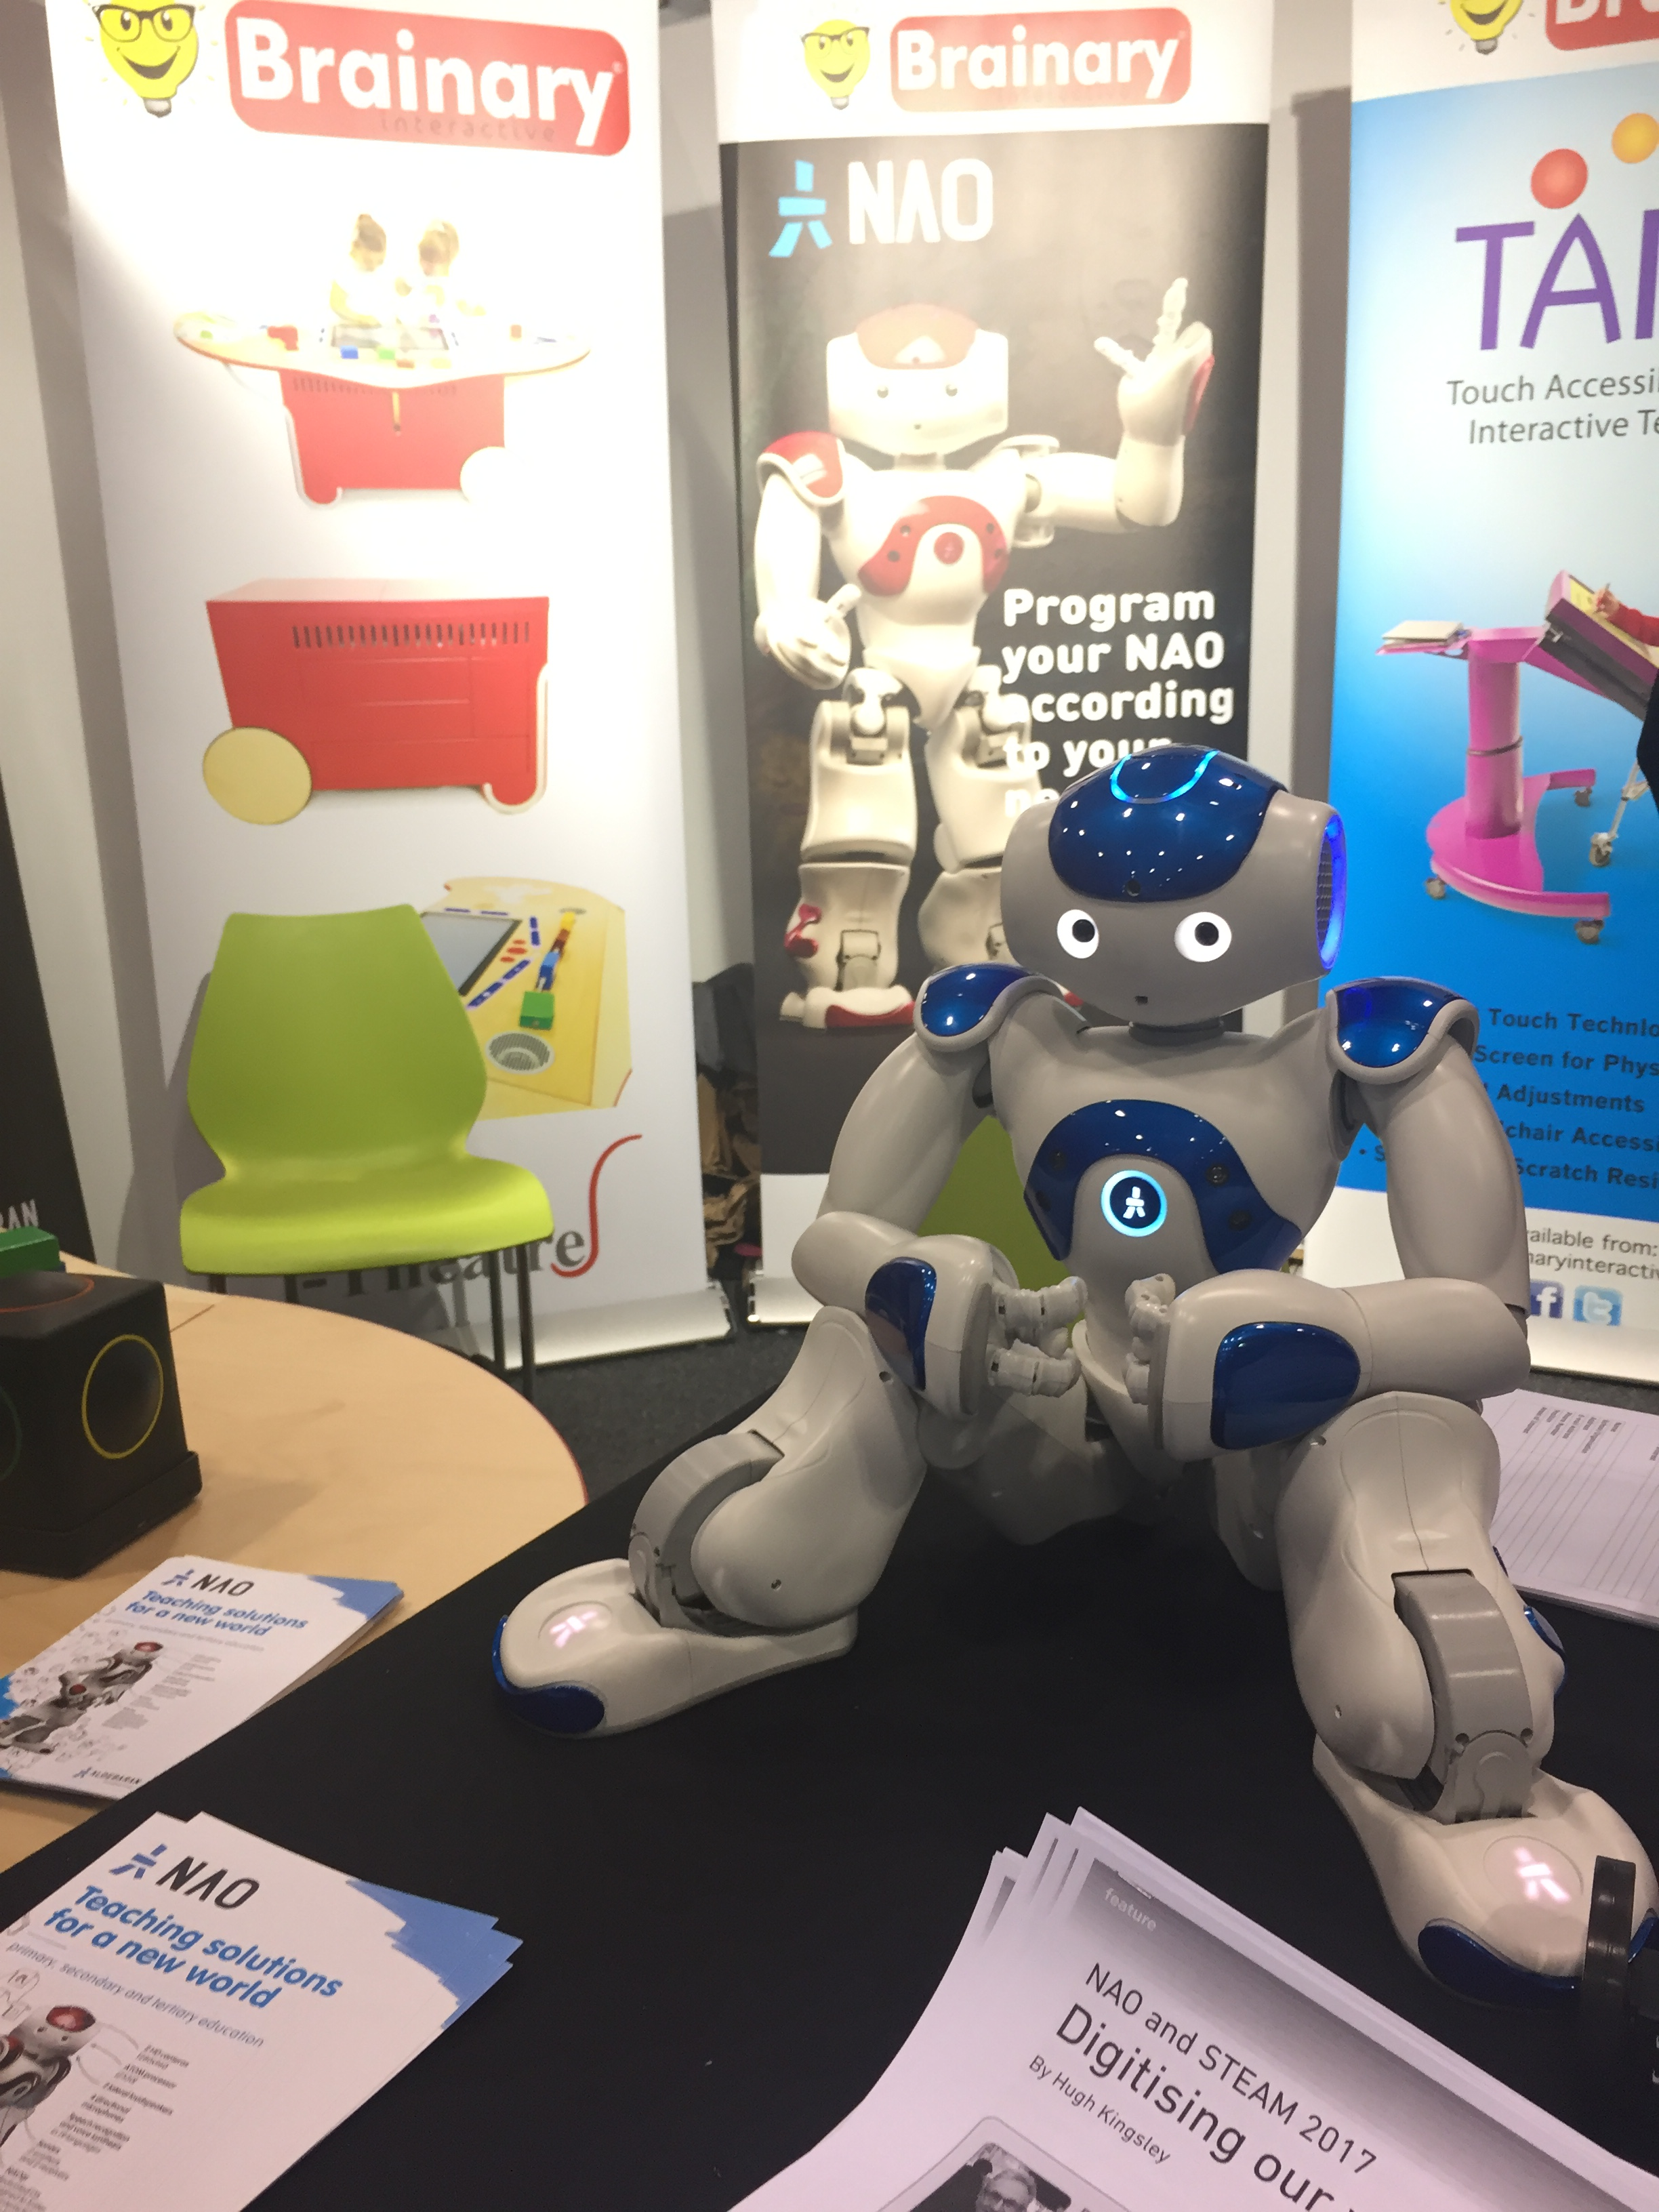 One of the most popular stands in the Exhibition. Nao made quite a few appearances in the conference!